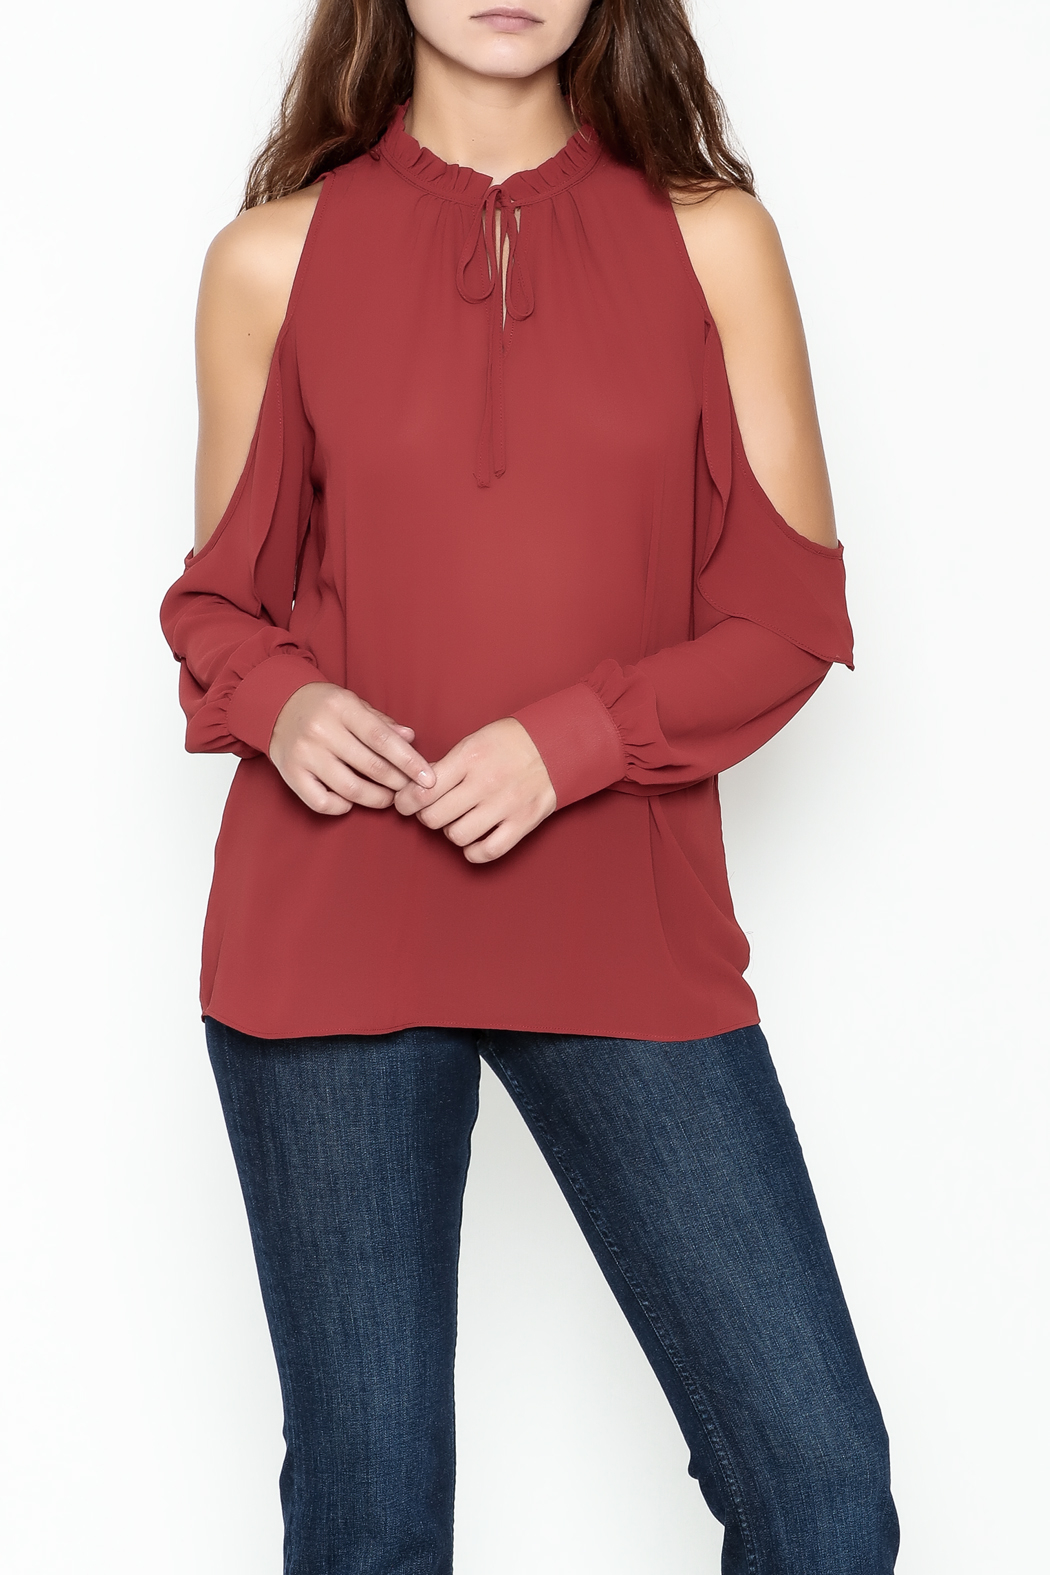 HYFVE Ruffle Neck Blouse - Front Cropped Image